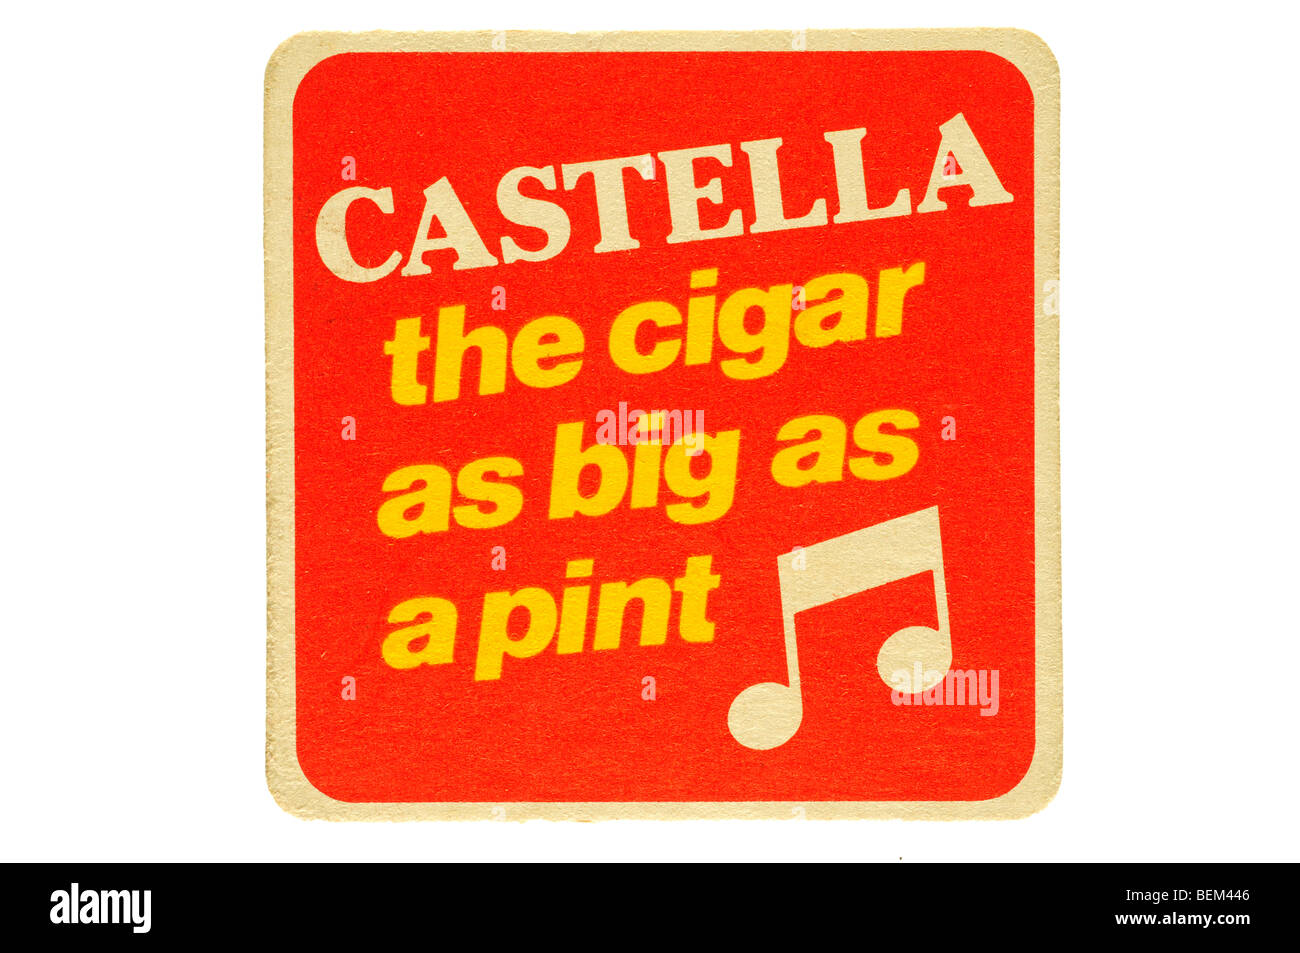 castella the cigar as big as a pint - Stock Image